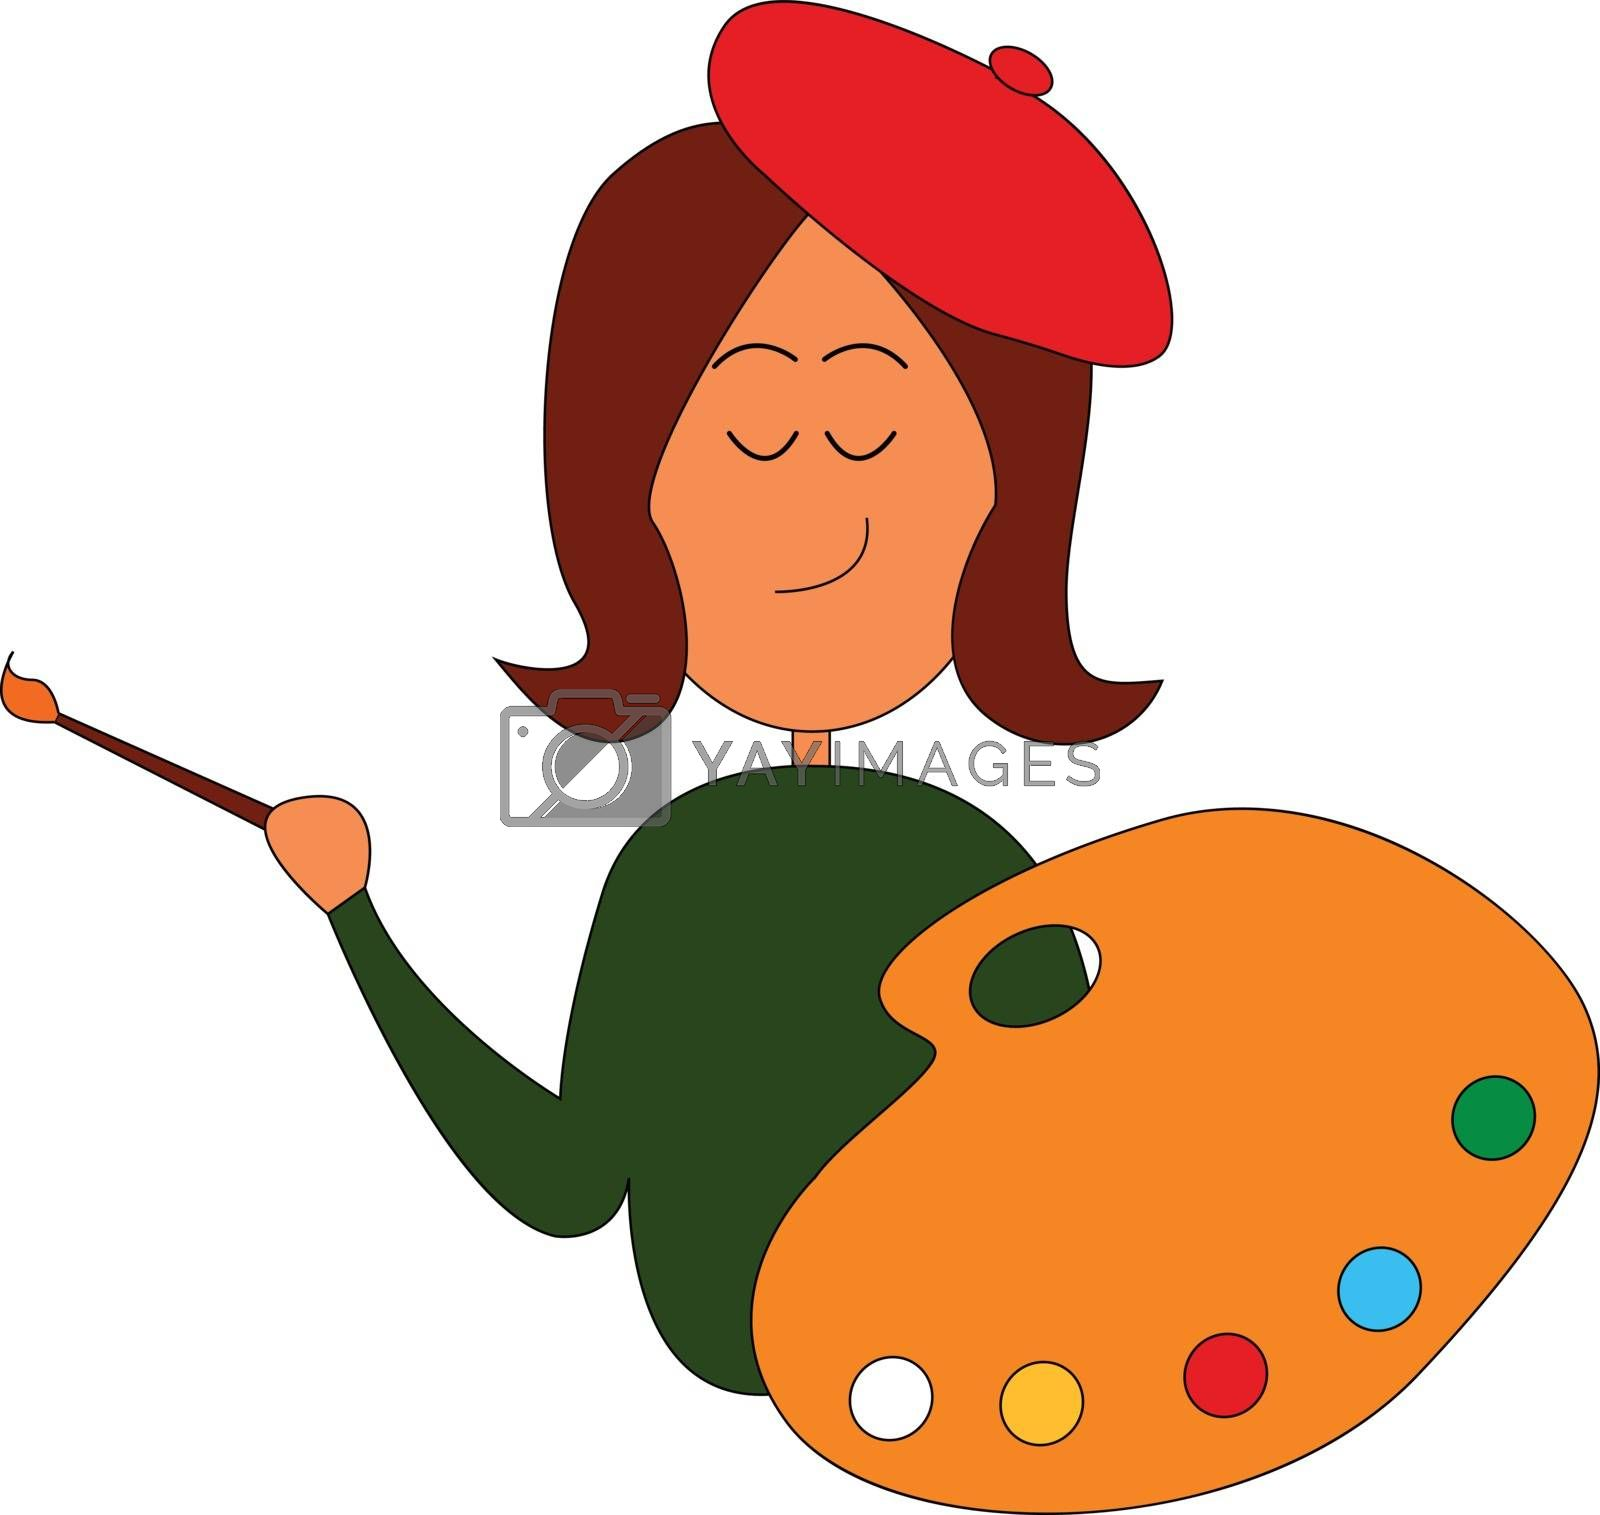 Royalty free image of A girl painter holding a palette and a paintbrush vector or colo by Morphart